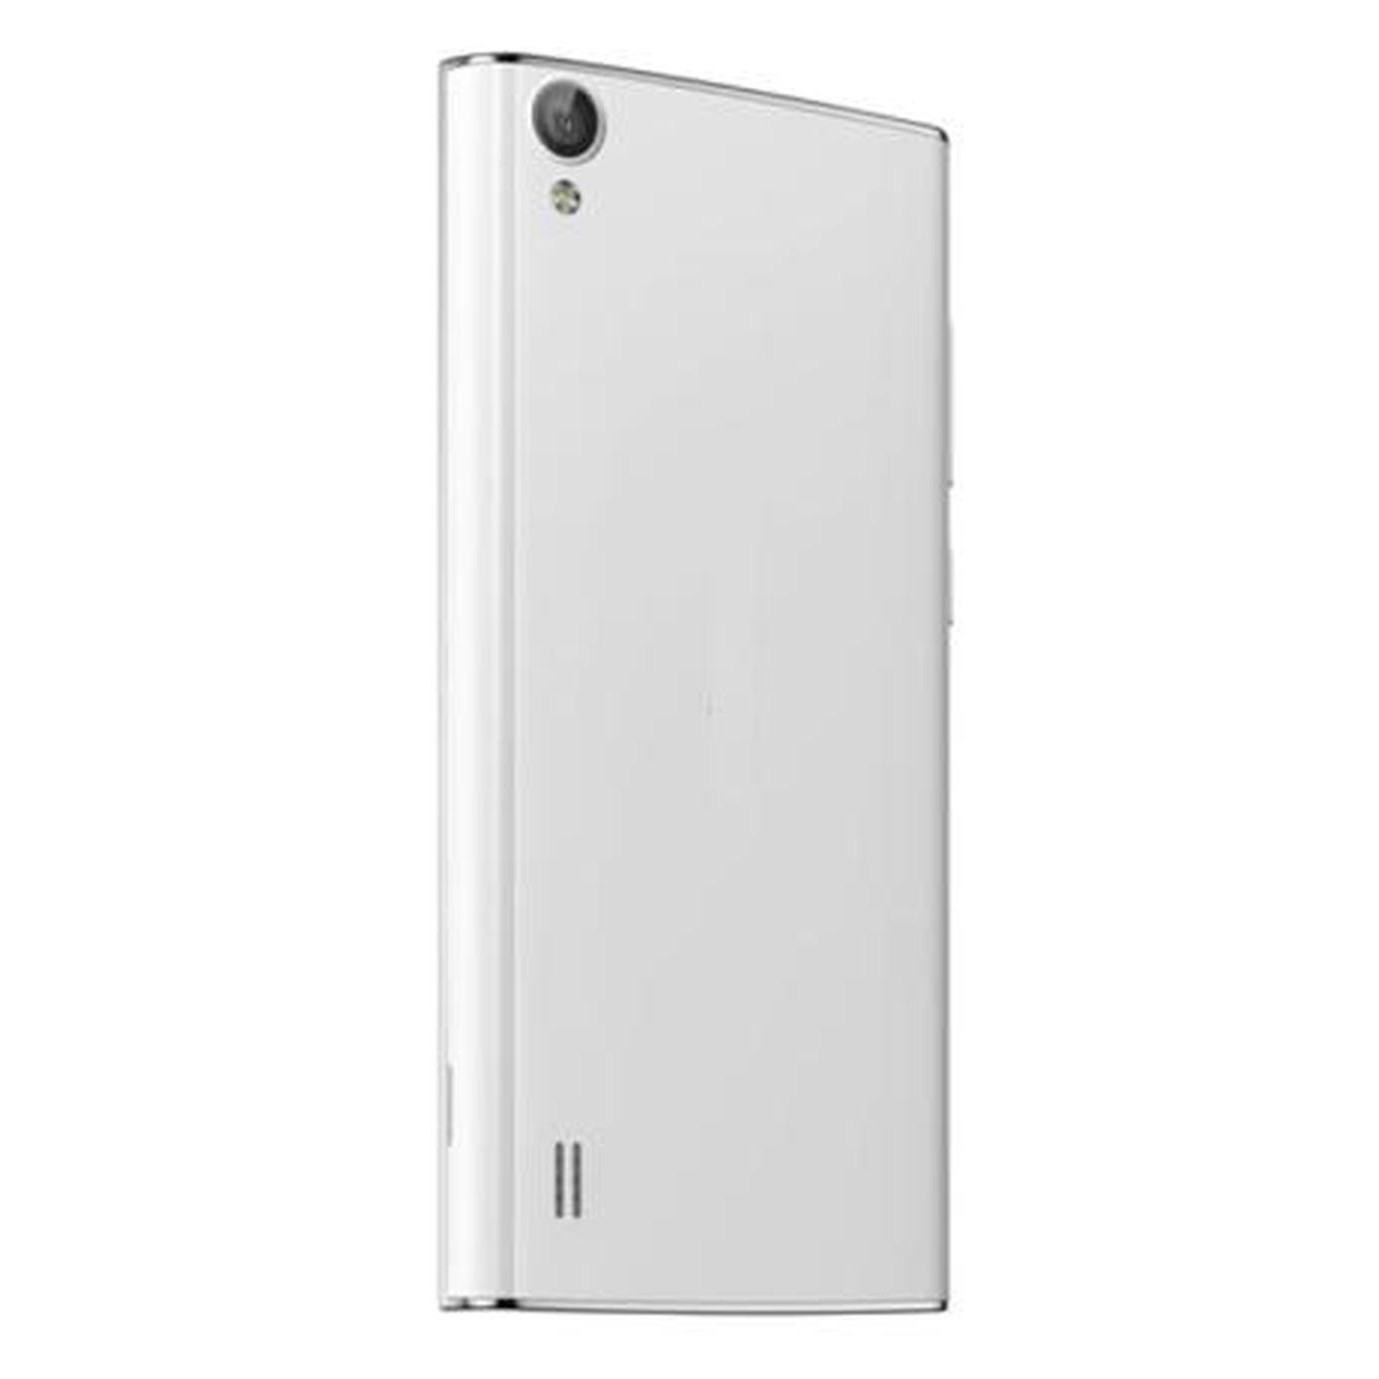 the latest 4b582 8b1fd Full Body Housing for Vivo Y15-Y13 - White